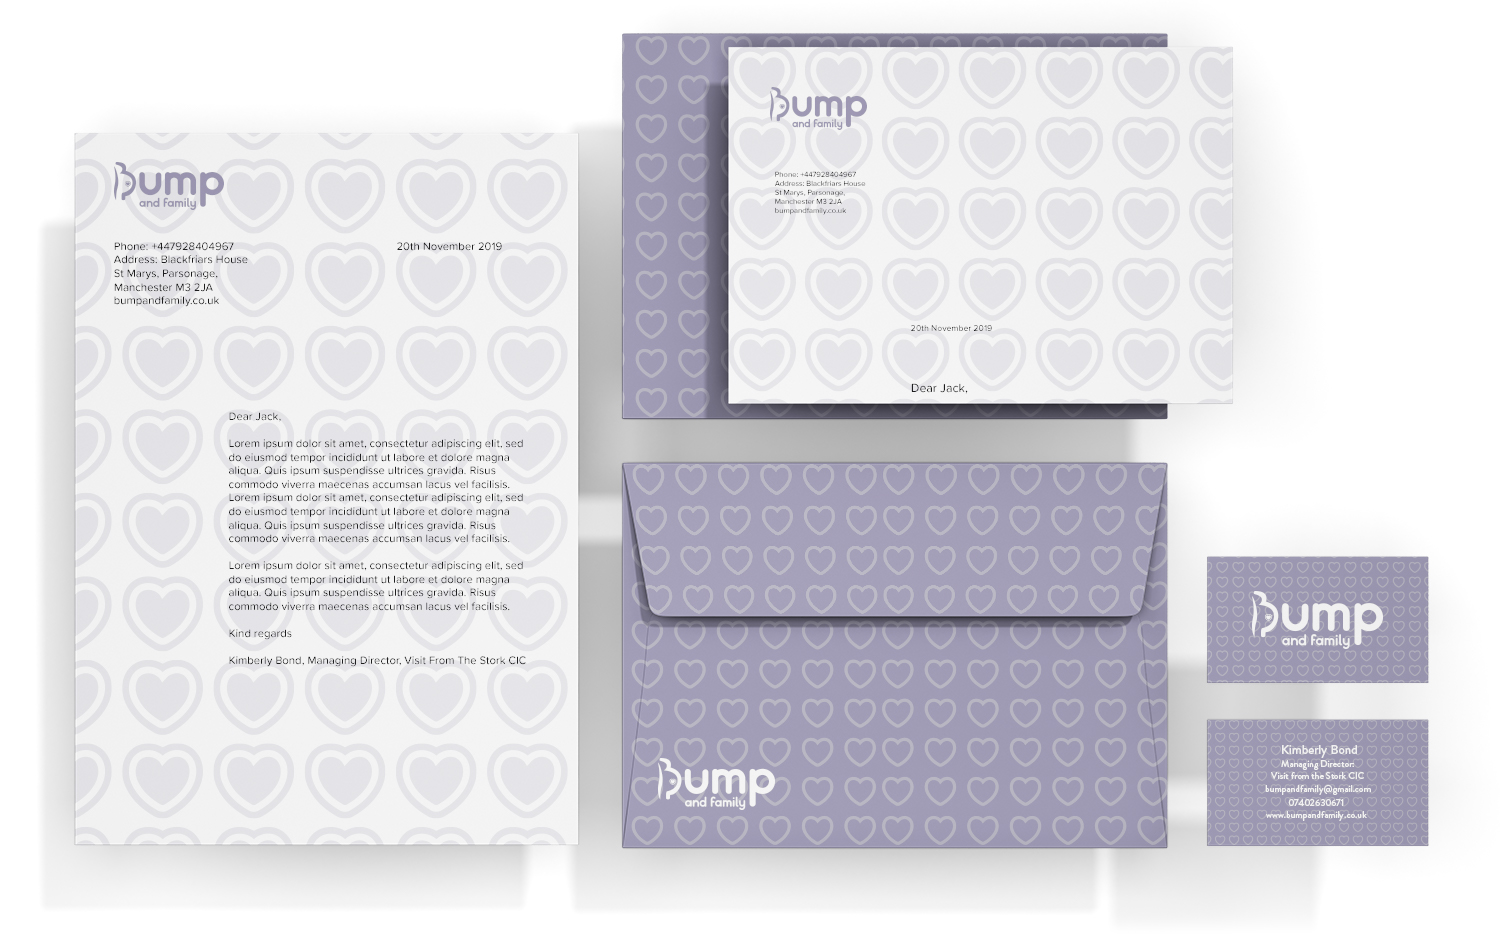 Bump and family stationery